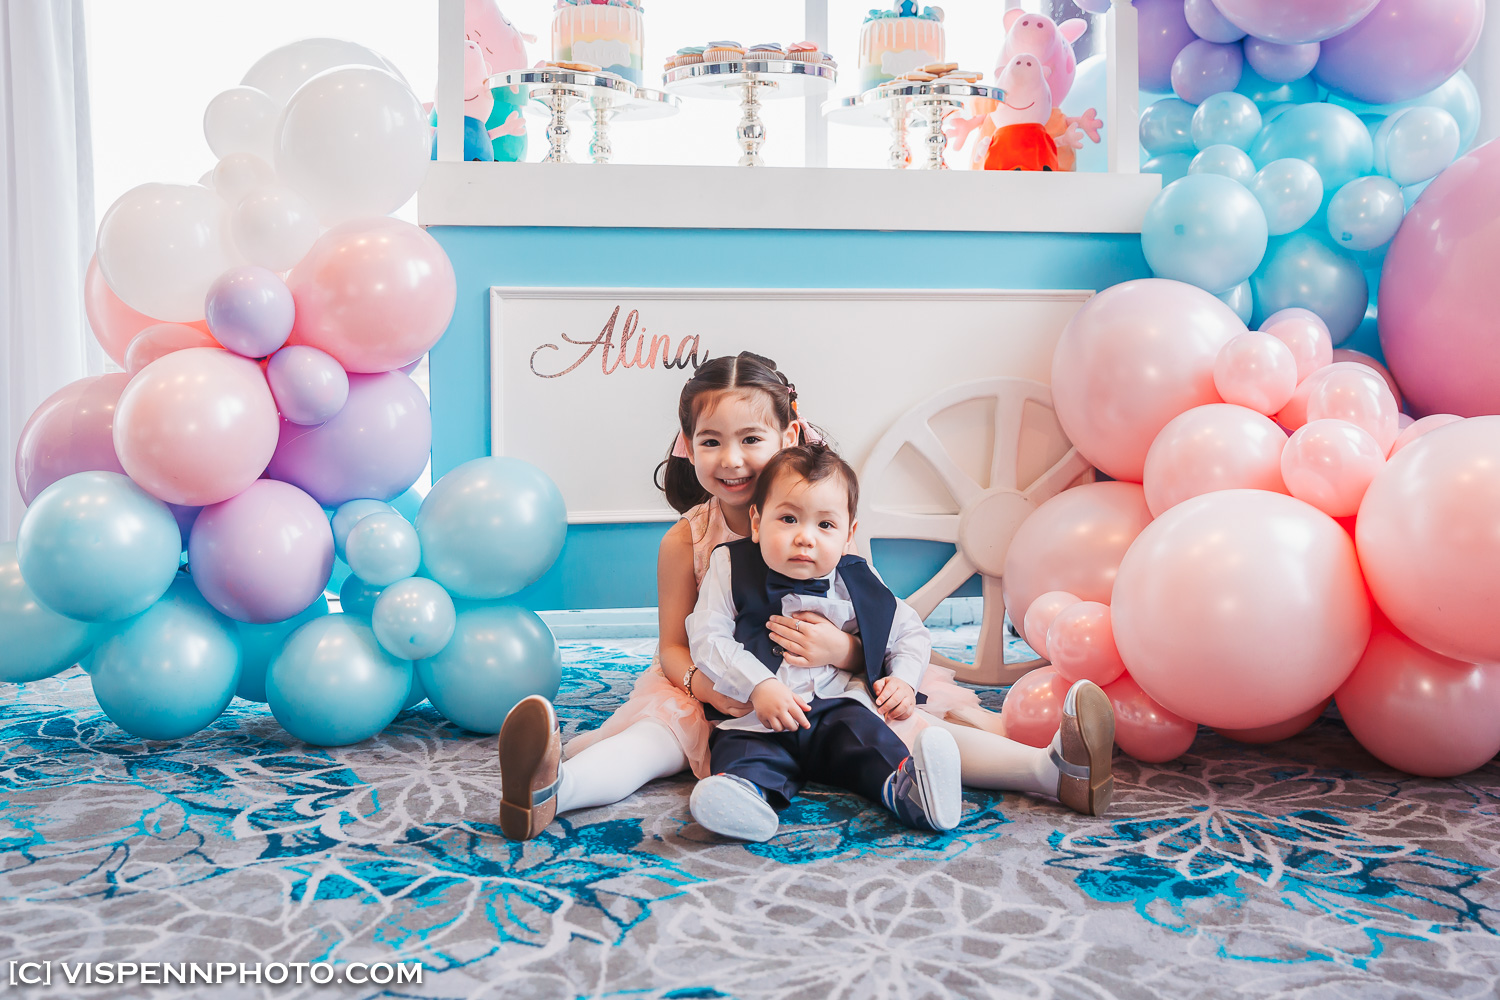 Melbourne Baby Family Birthday Party Photographer 墨尔本 百日宴 满月宴 周岁宴 摄影 VISPENN 5DH 7438